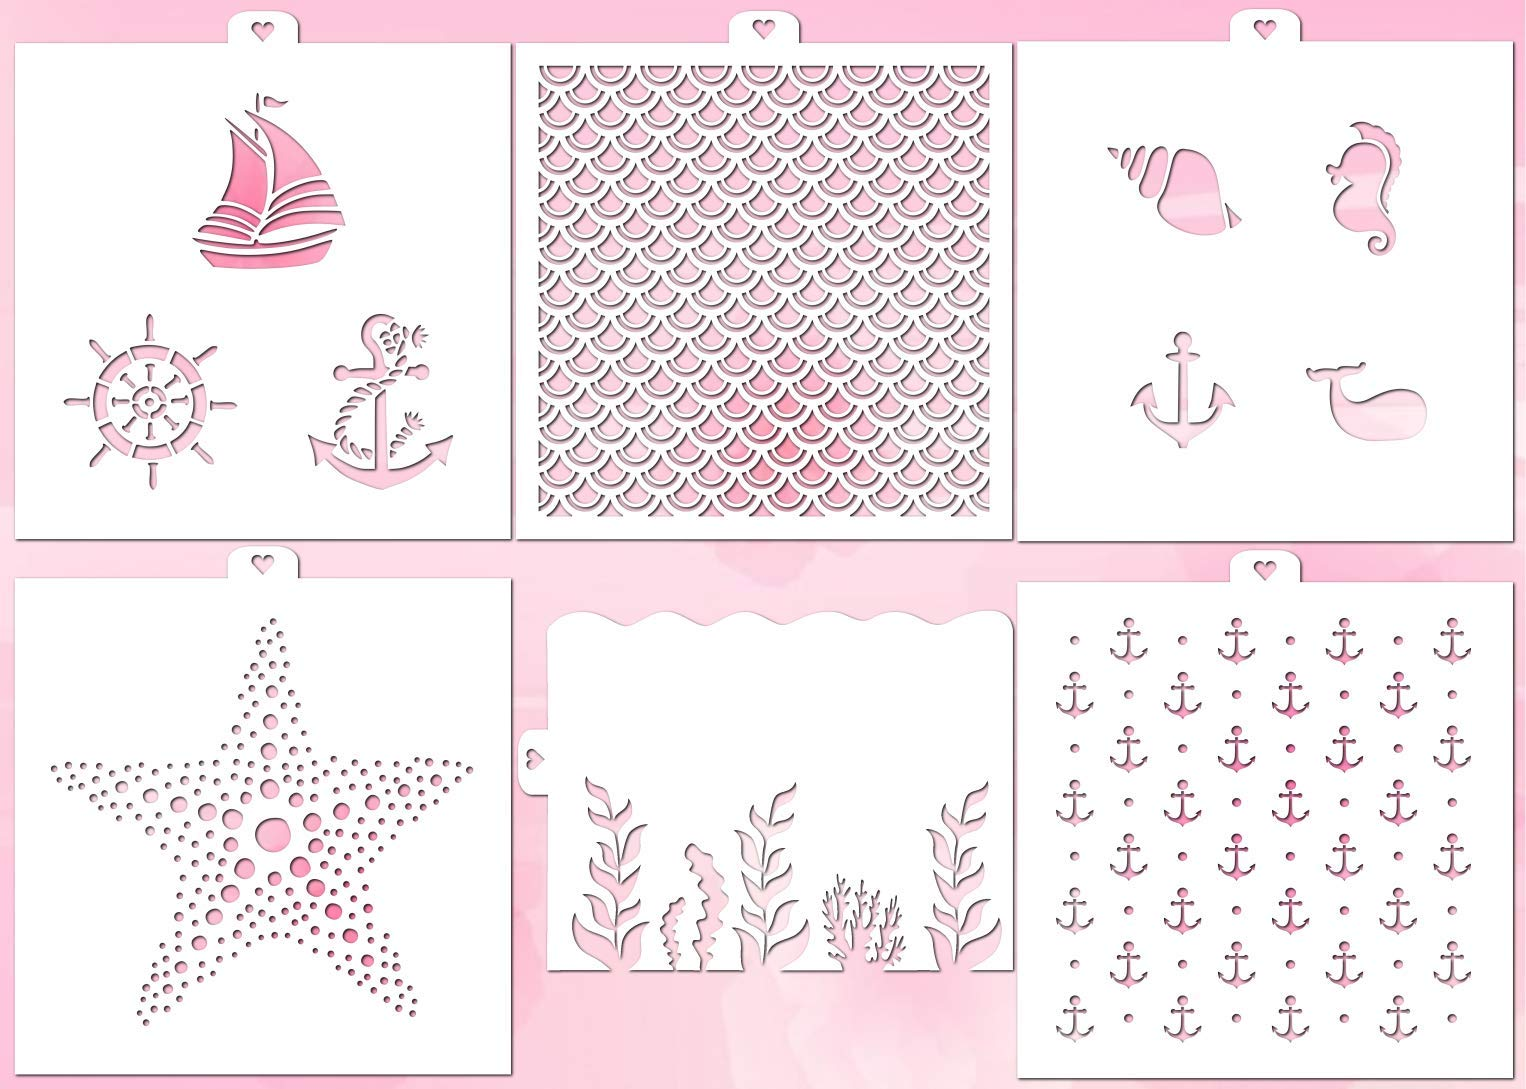 Cookie and Craft Stencil Set Sea, 6 pcs: scales, anchor, algae, waves, marine, starfish by Lubimova.com